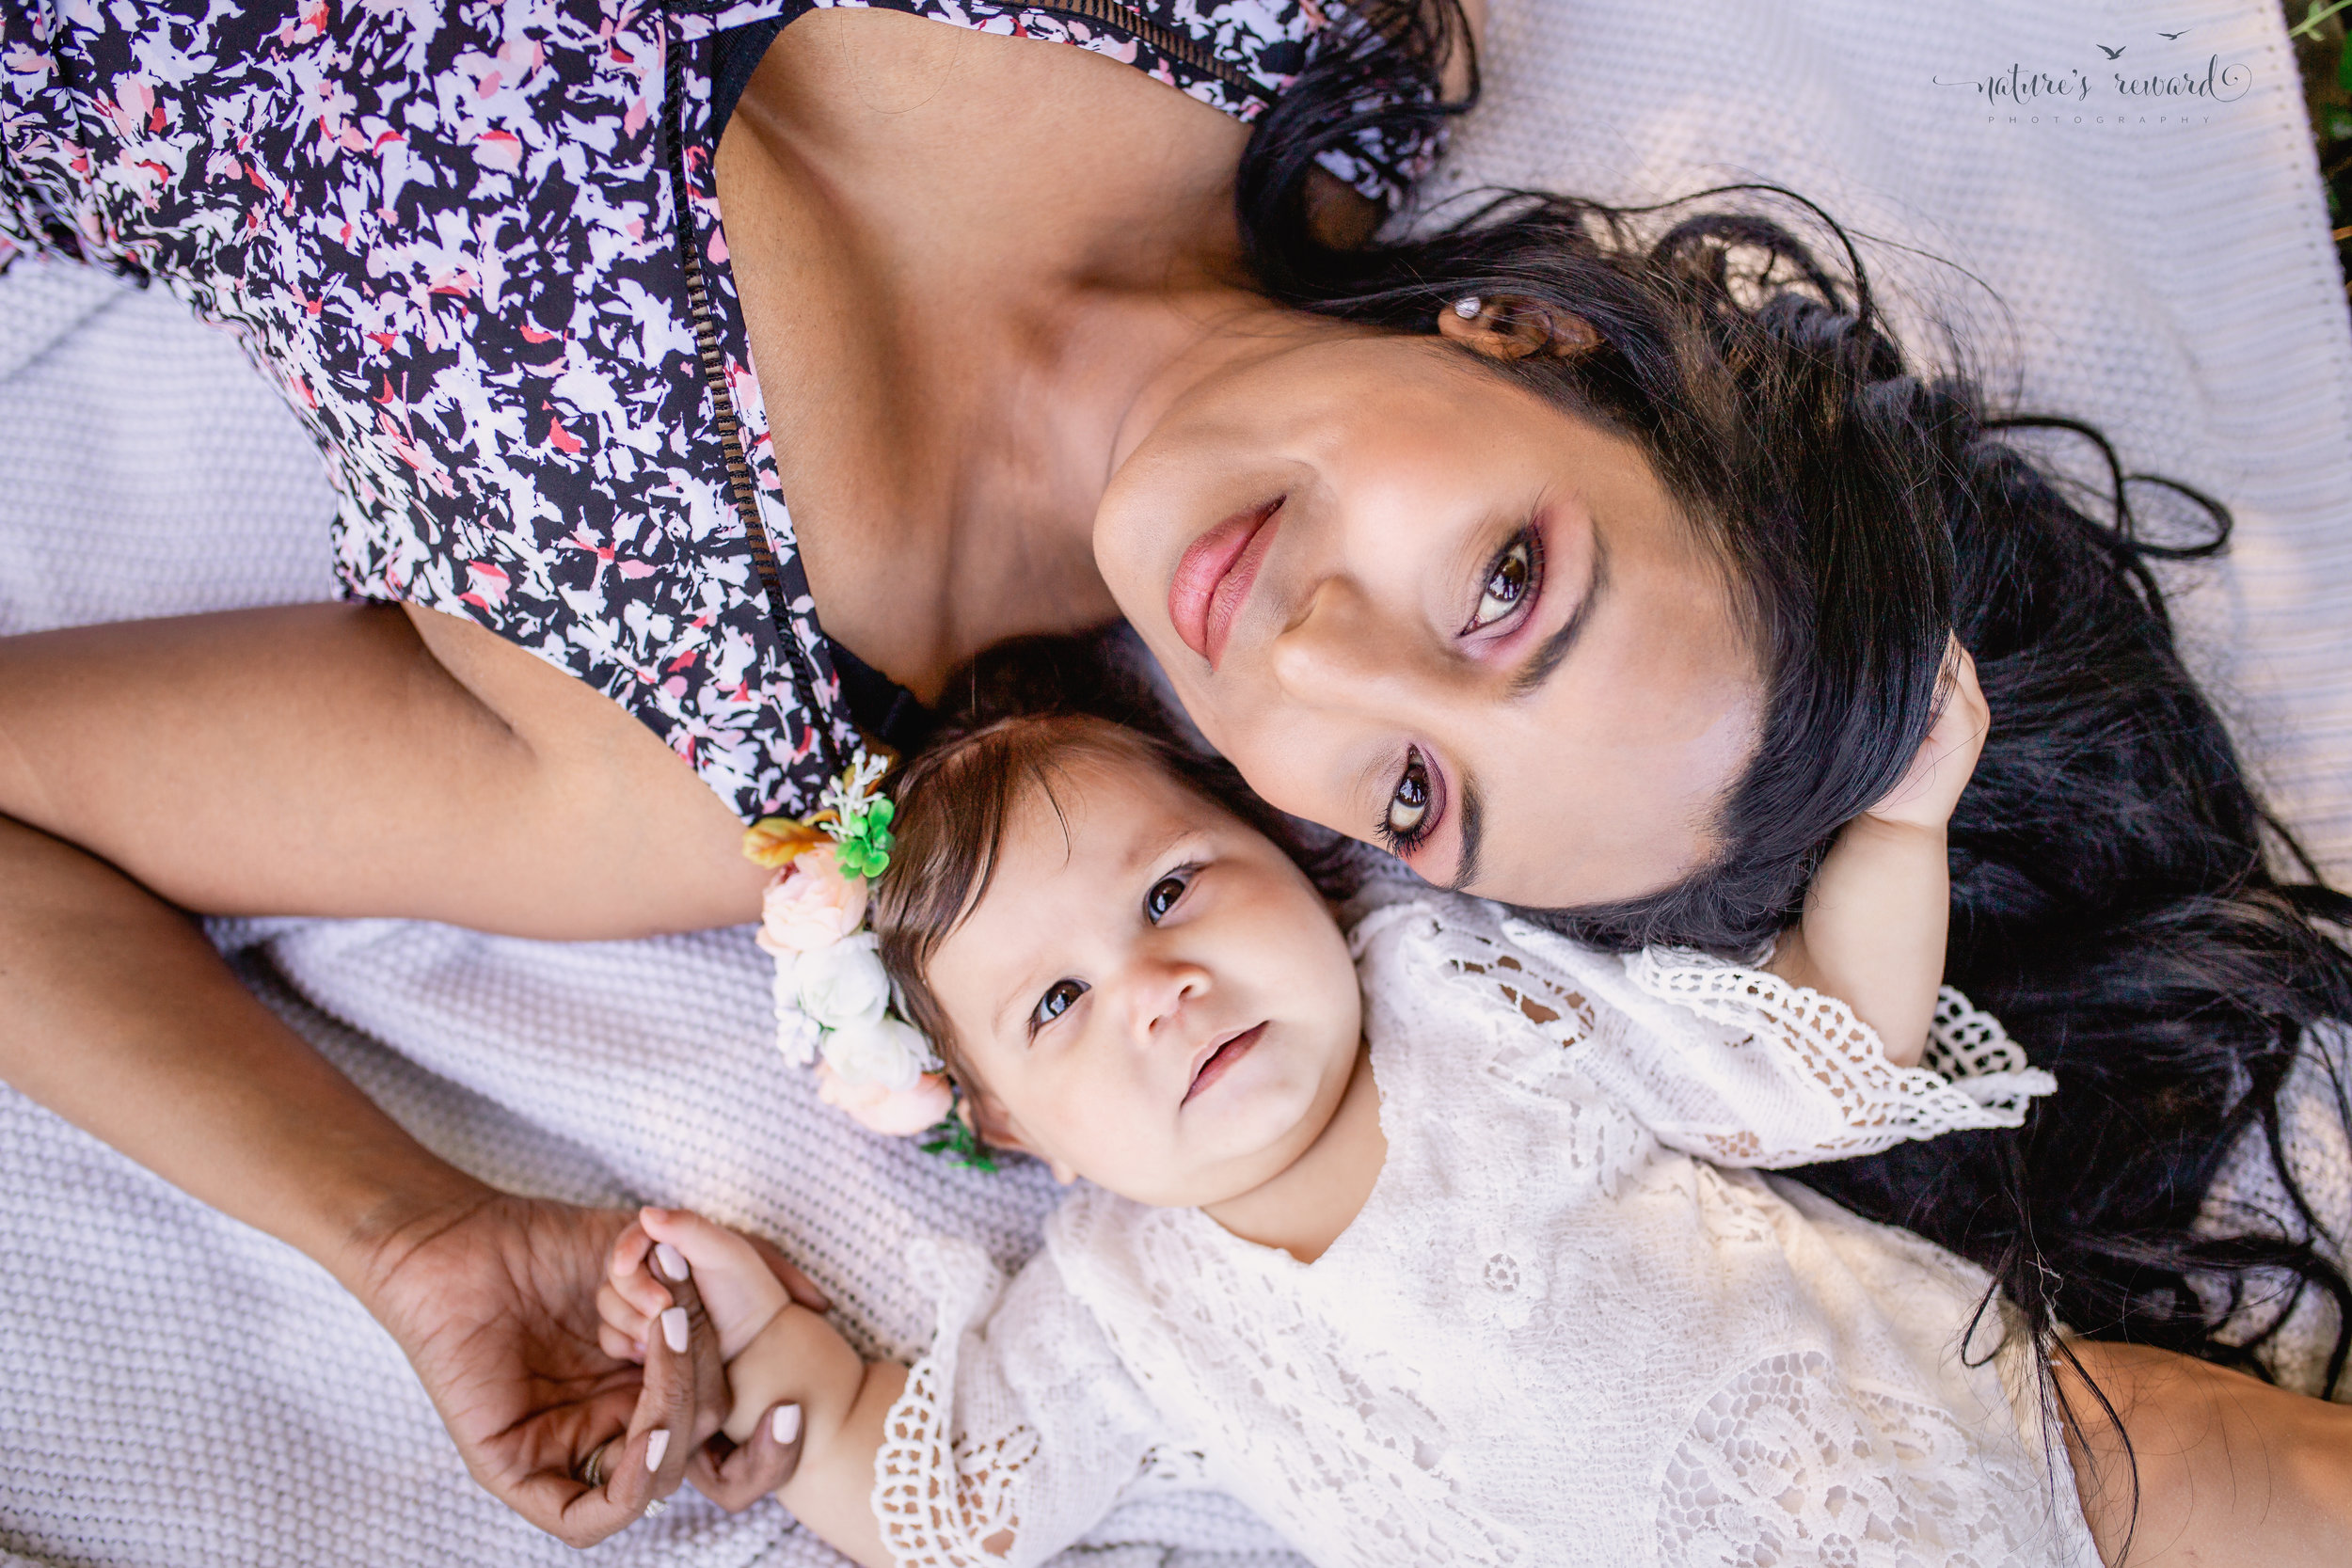 Mom and daughter portrait by Nature's Reward Photography